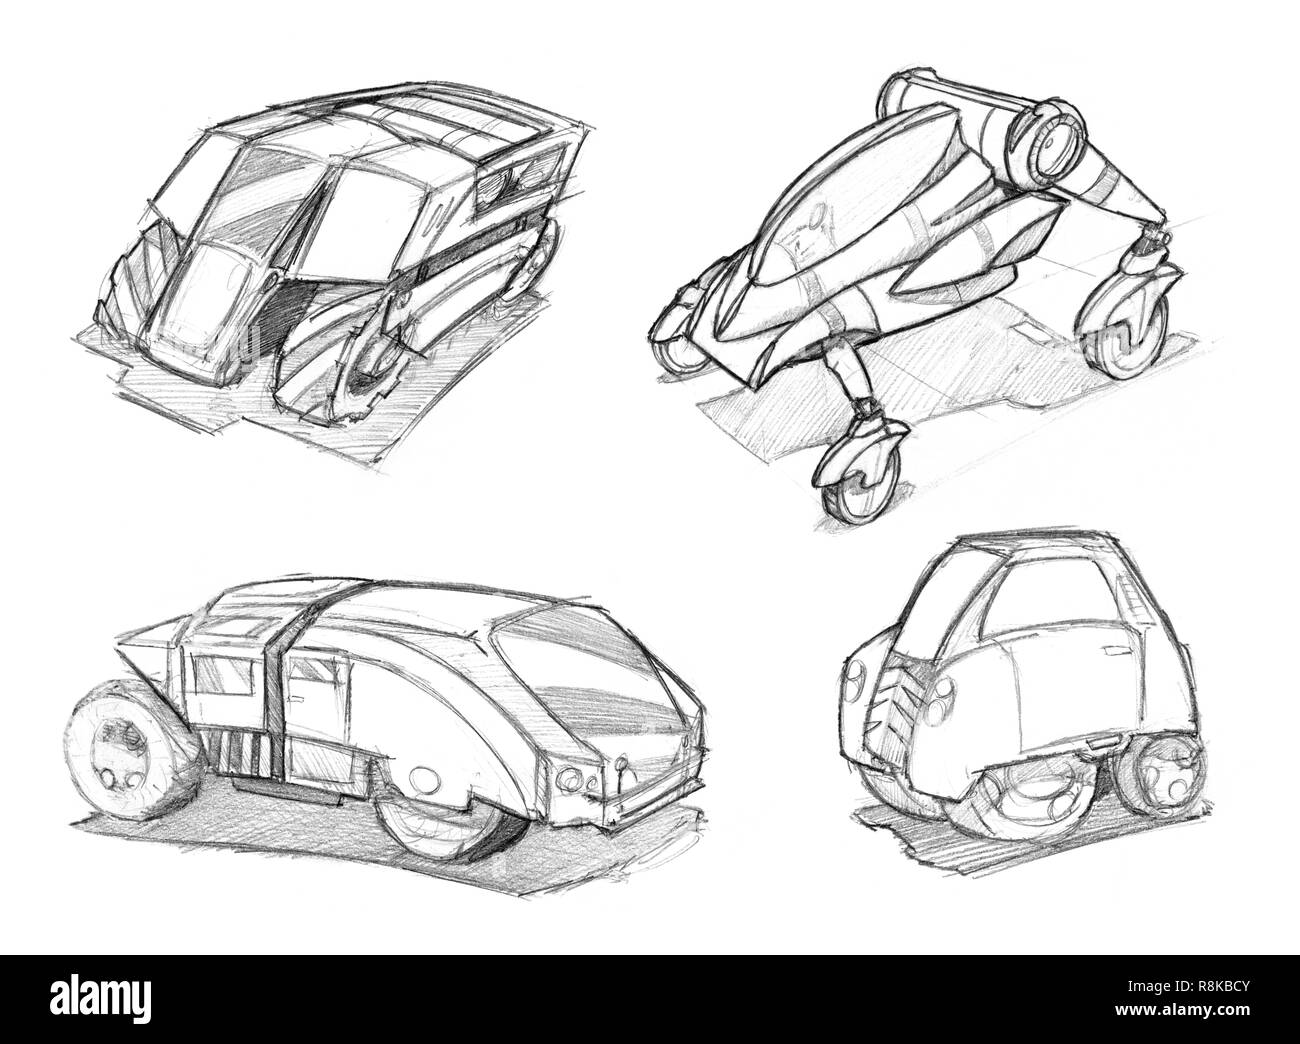 Pencil concept art drawing of set of futuristic sci fi automotive car designs